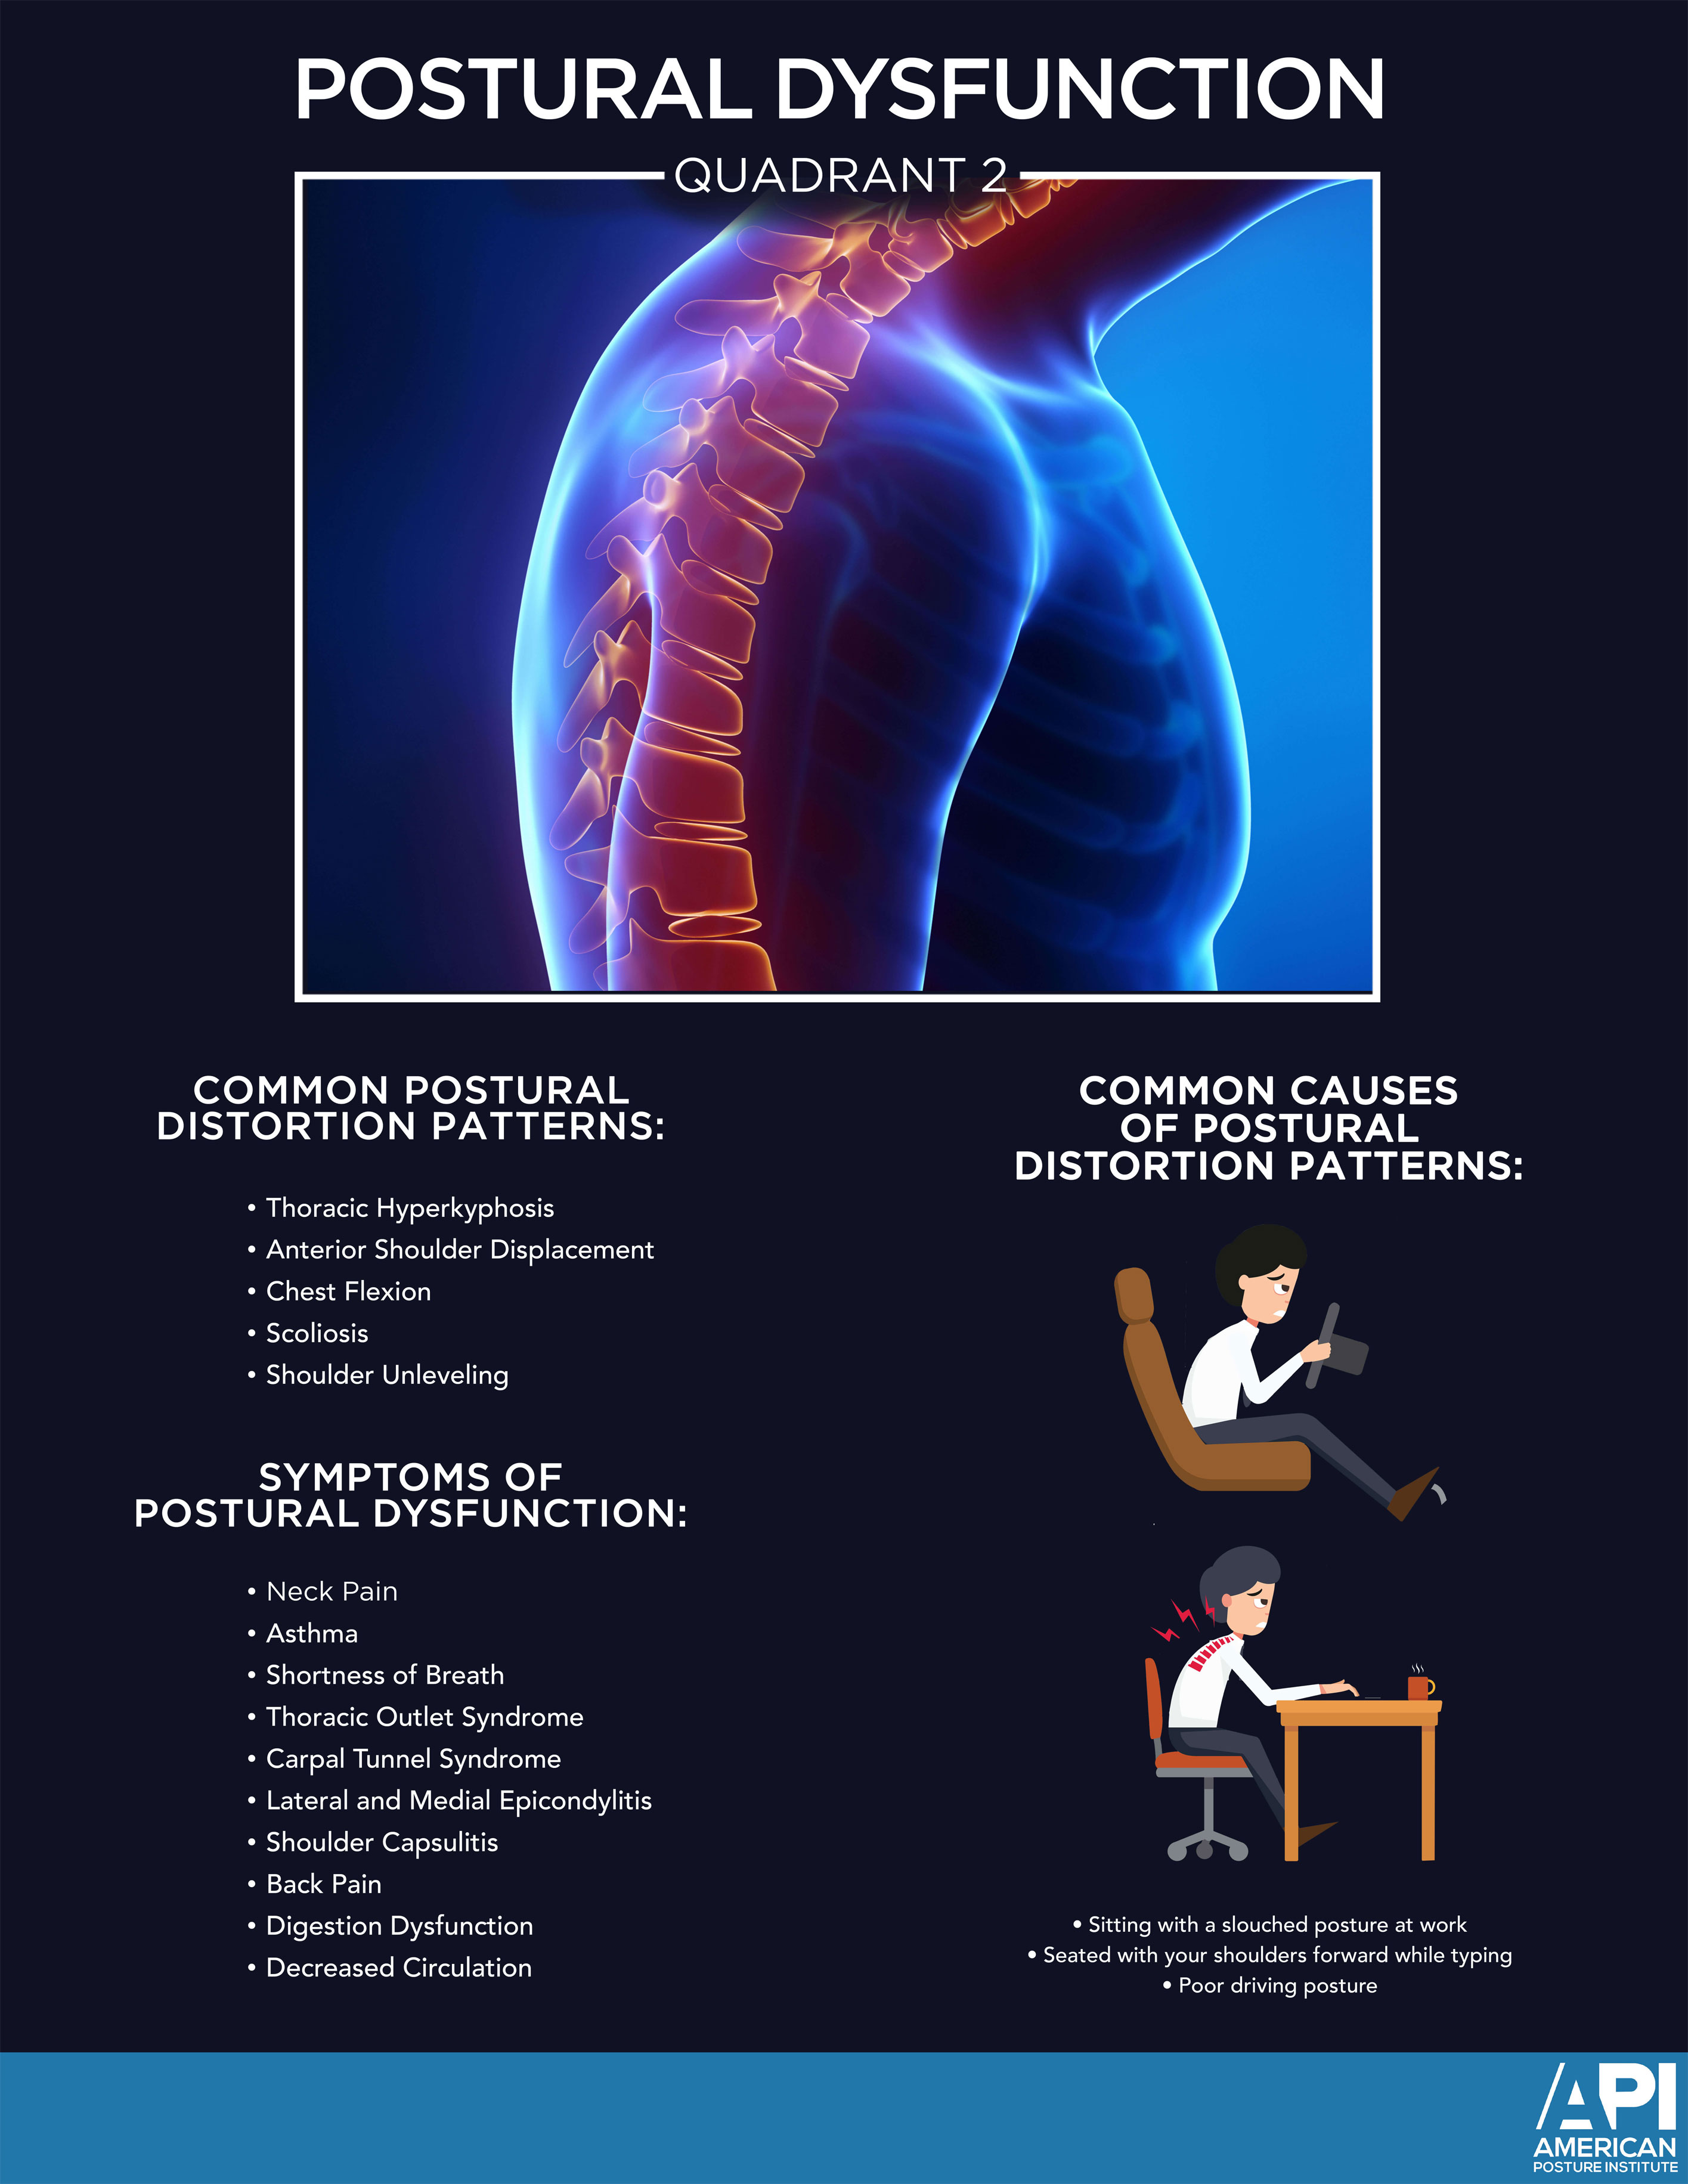 Postural Dysfunction Quadrant 2 Poster